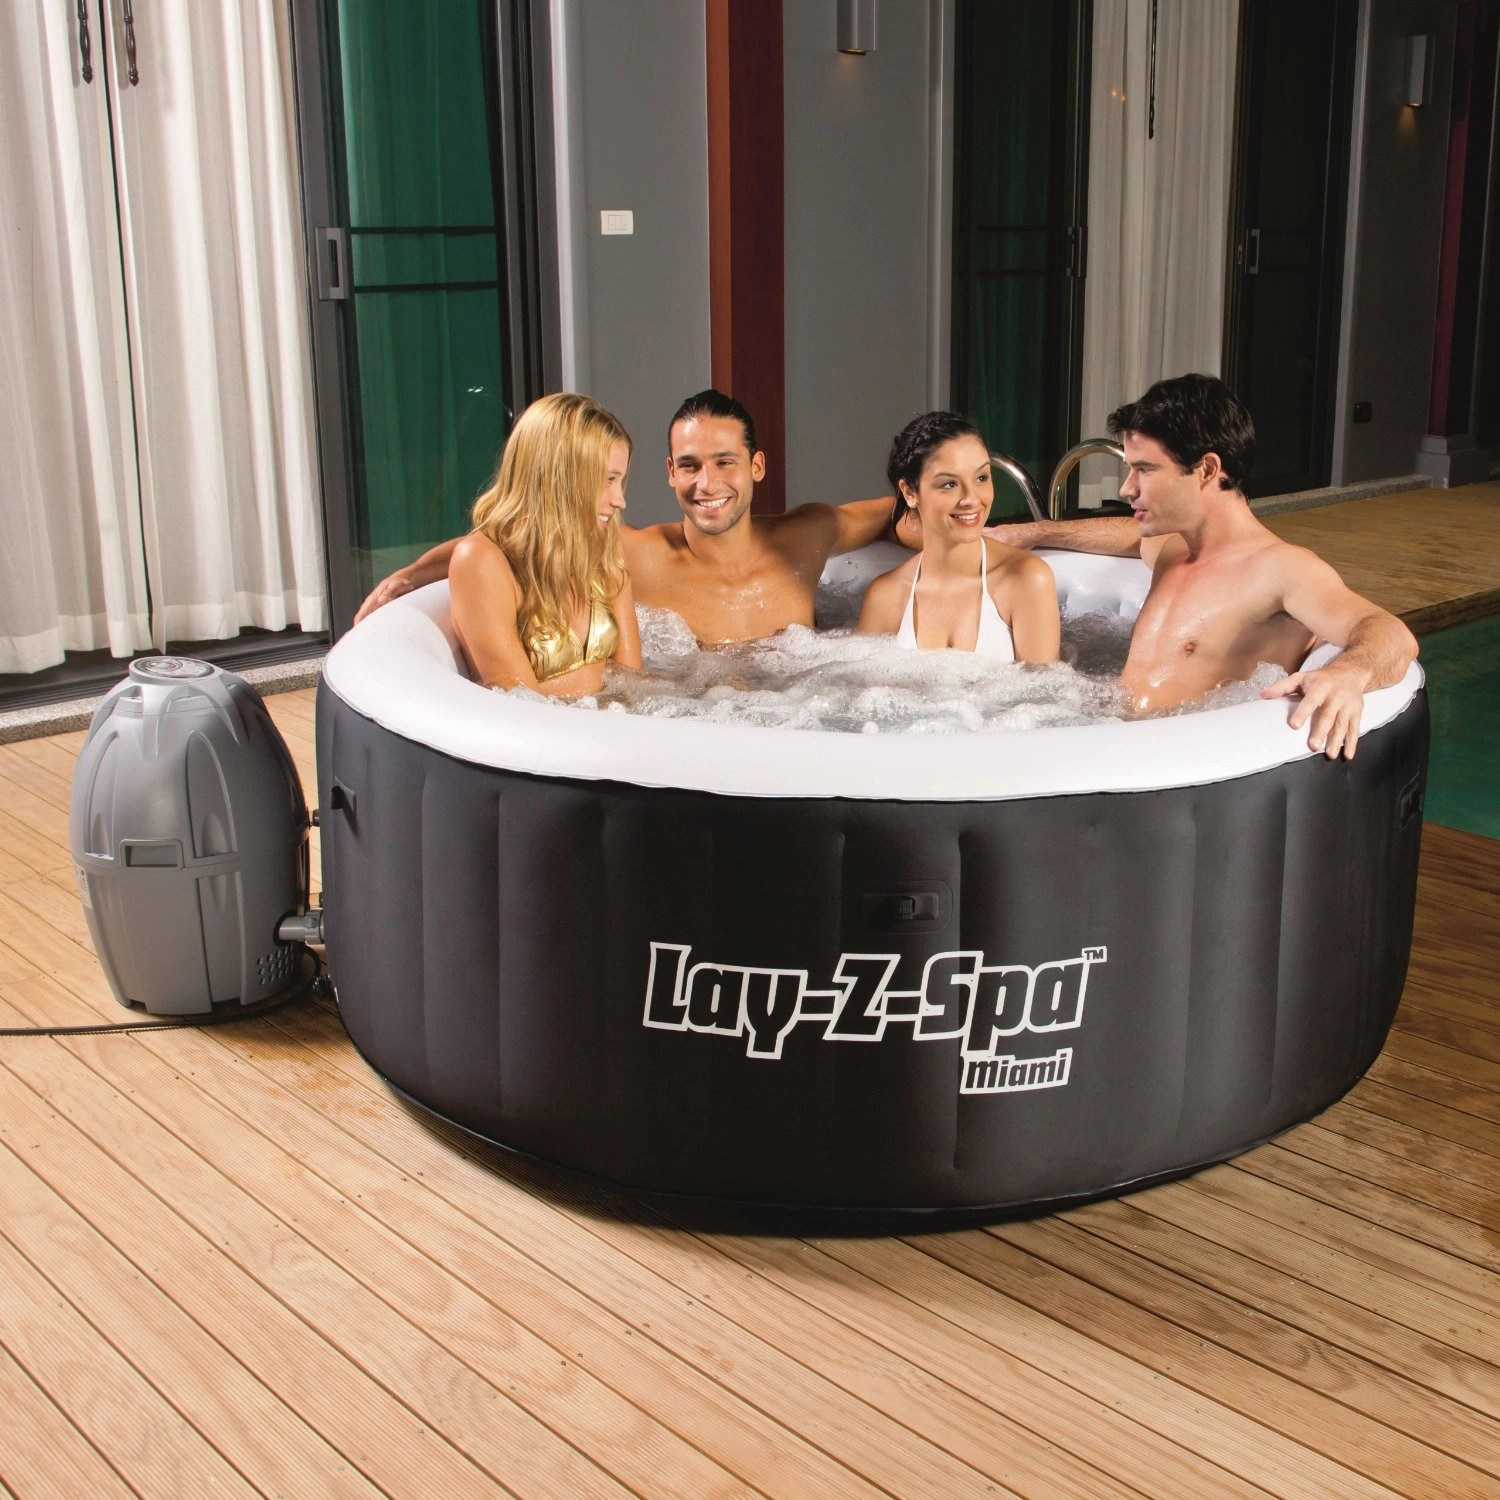 Bestway Pools Lazy Spa Saluspa Miami Review Good Affordable Hot Tub For 2018